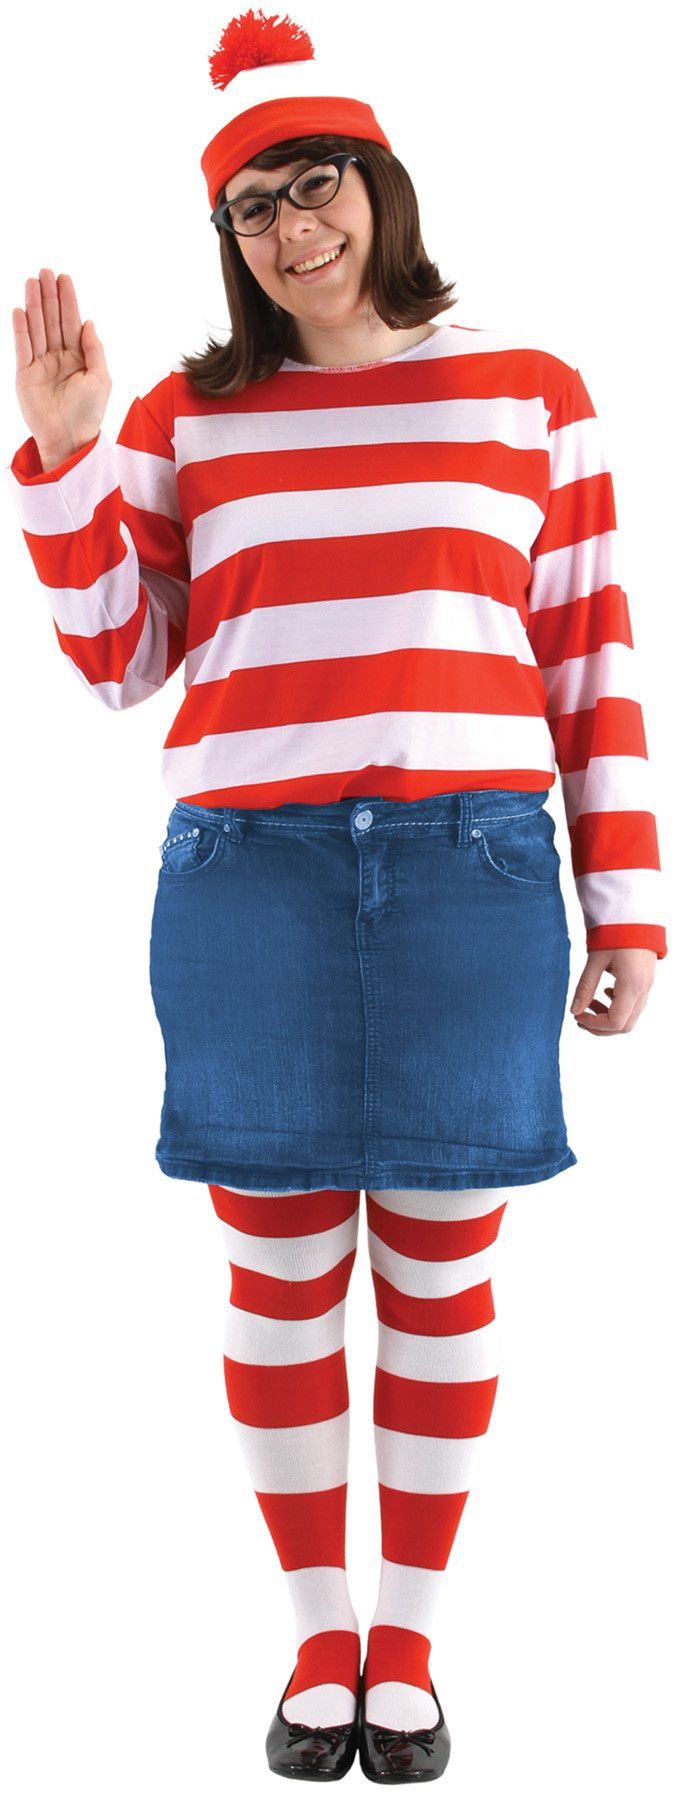 Familiar Waldo hat, glasses, and shirt. Add your own pants or skirt! Adult women's 2X Large fits sizes 20-22.